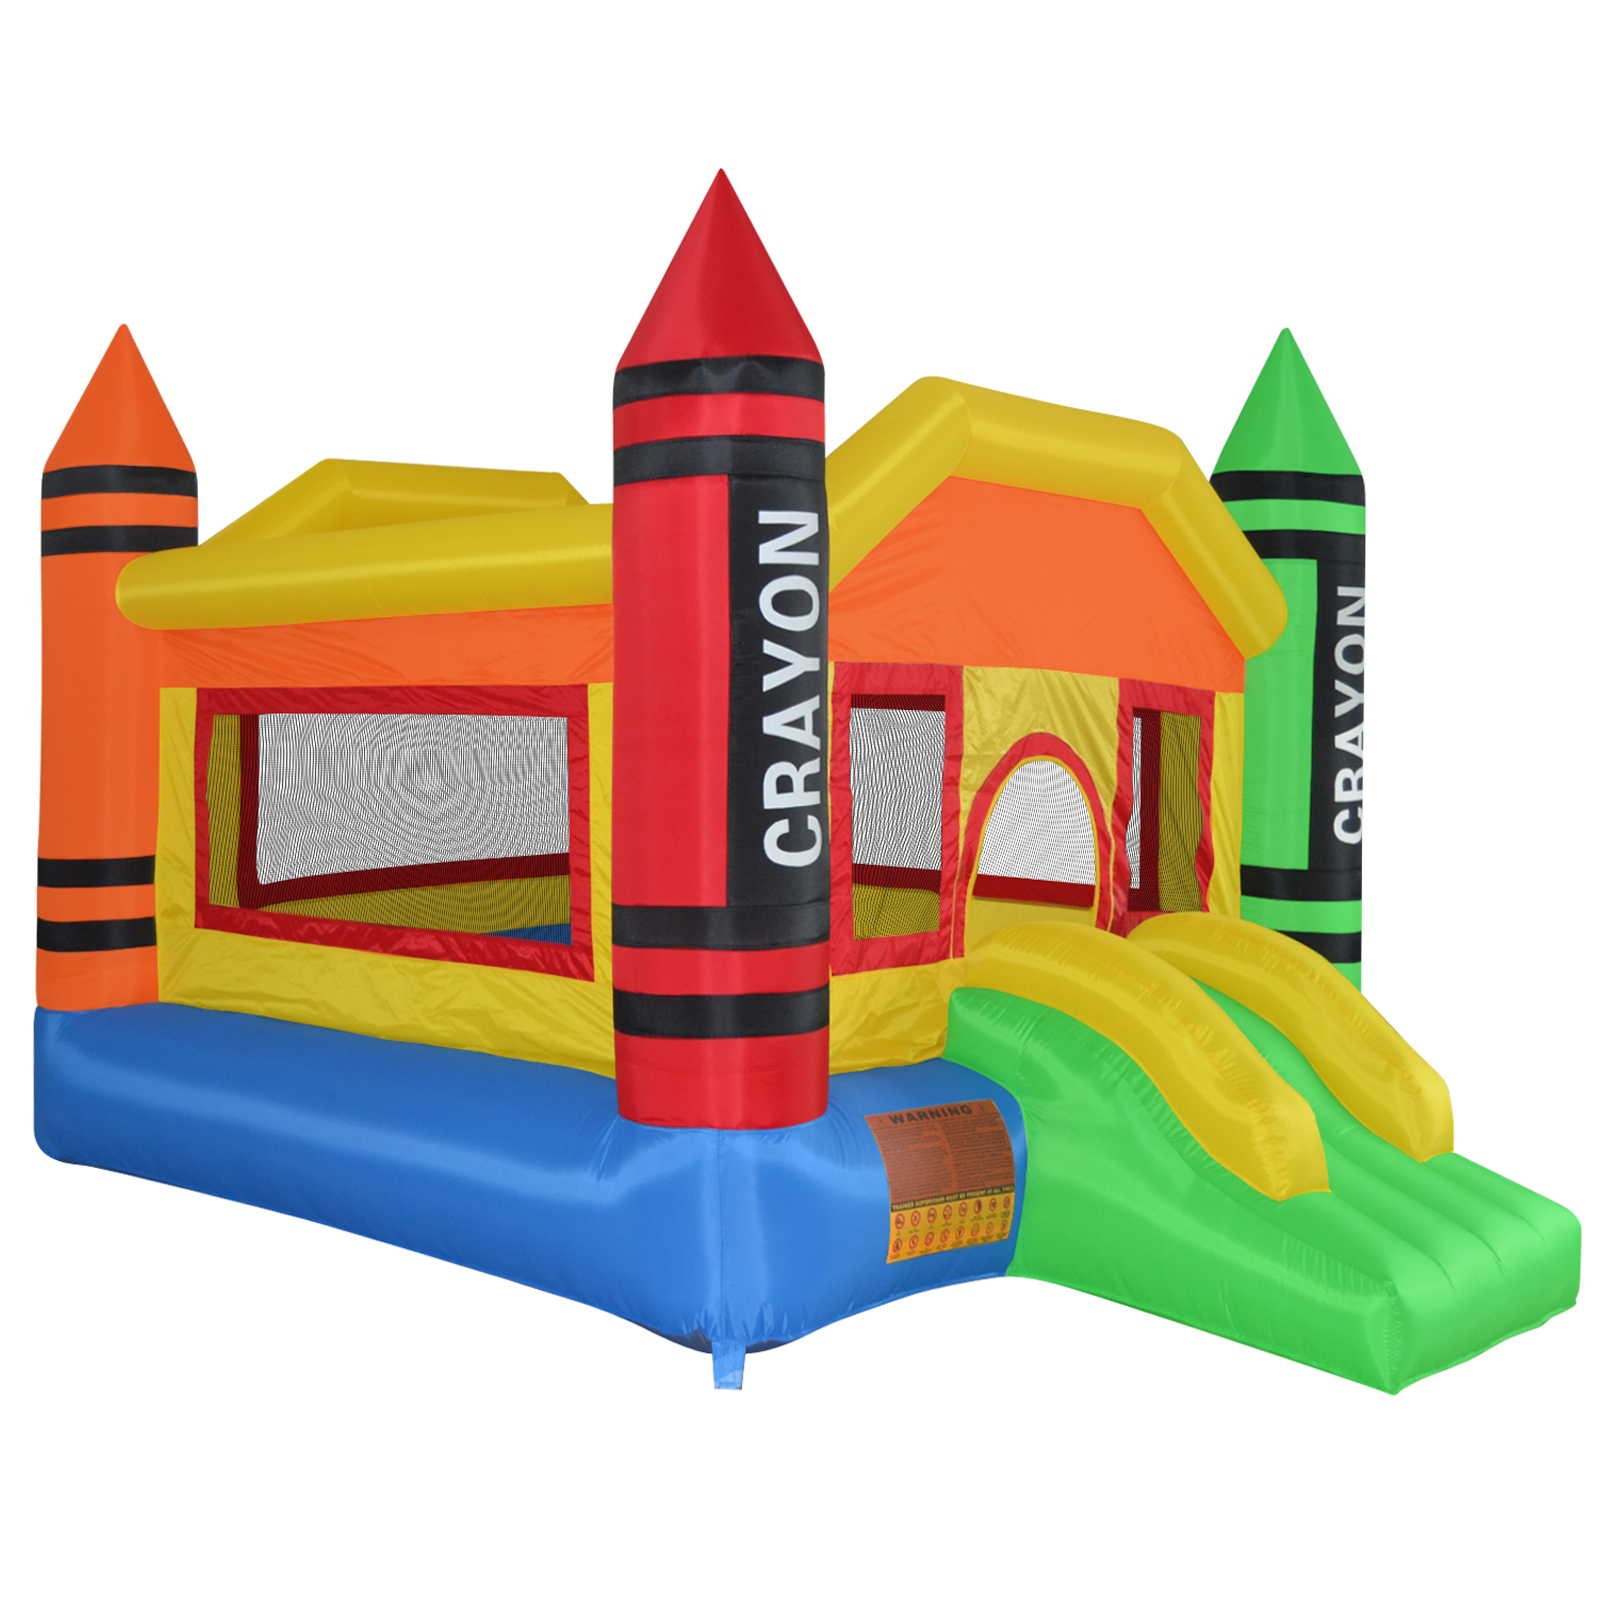 Cloud 9 Mini Crayon Bounce House - Inflatable Bouncing Jumper with Blower